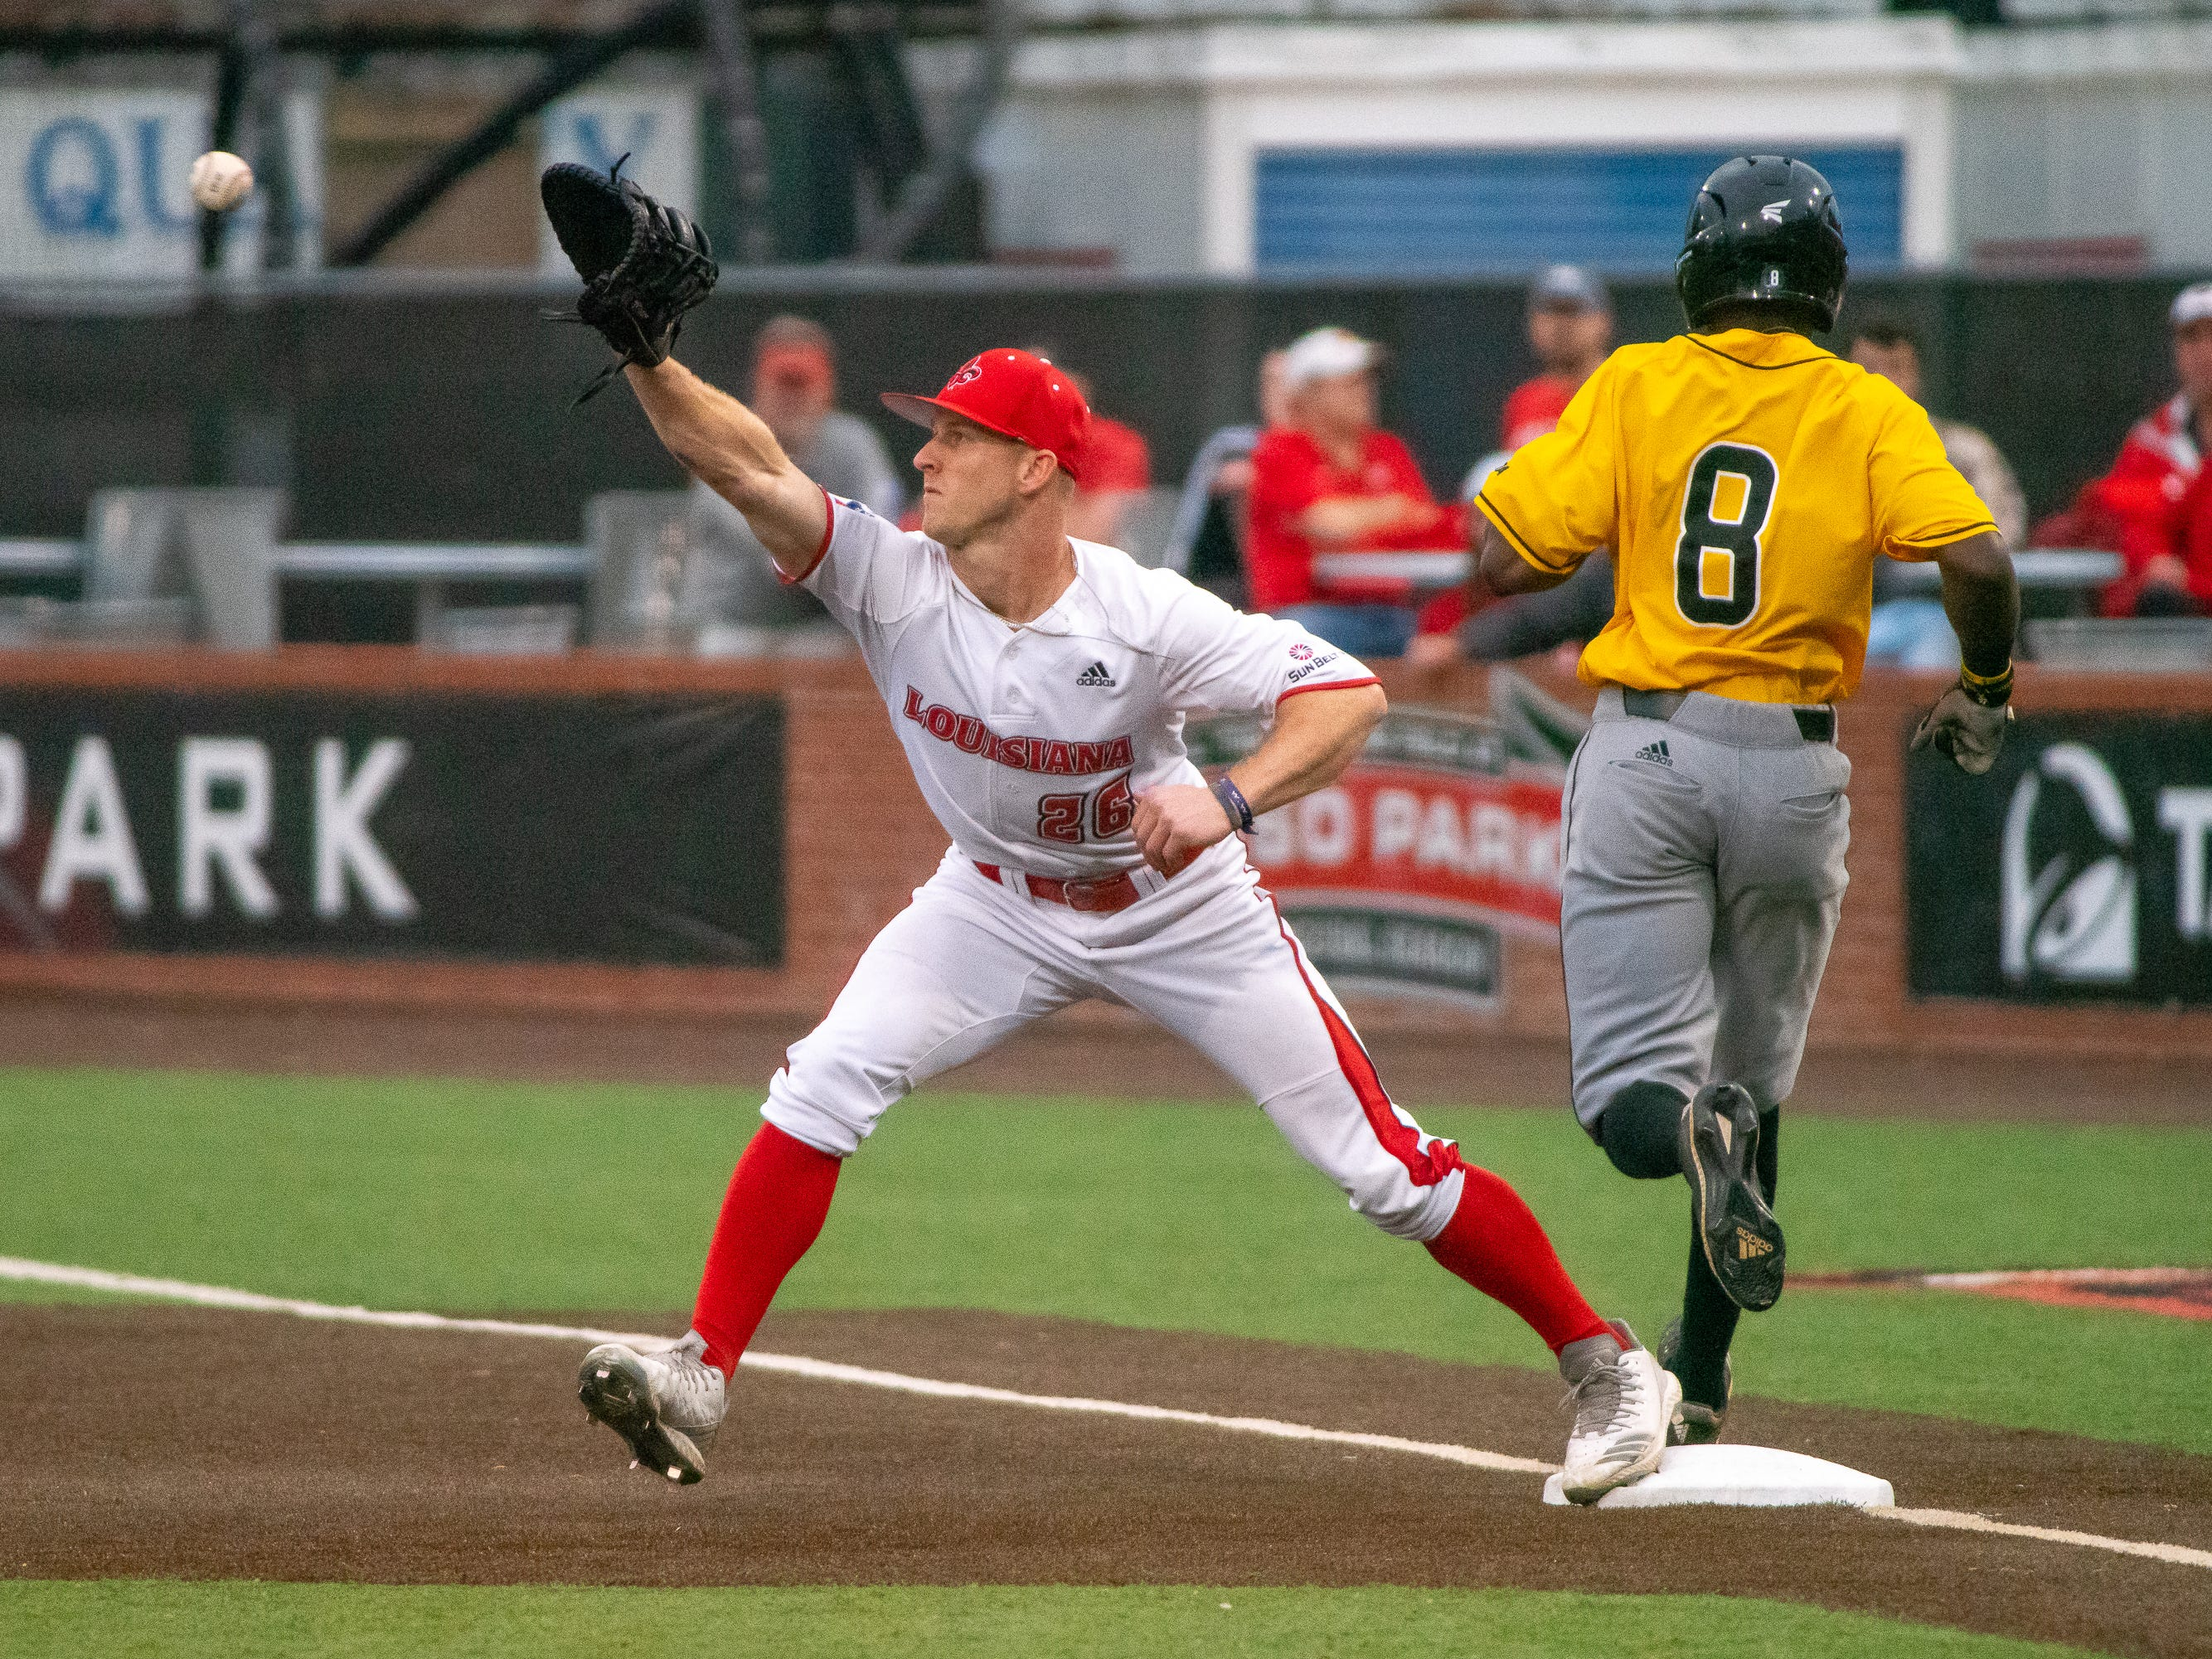 """UL's Daniel Lahare catches a late throw to first base as the Ragin' Cajuns take on the Southern Miss Golden Eagles at M.L. """"Tigue"""" Moore Field on Wednesday, March 13, 2019."""